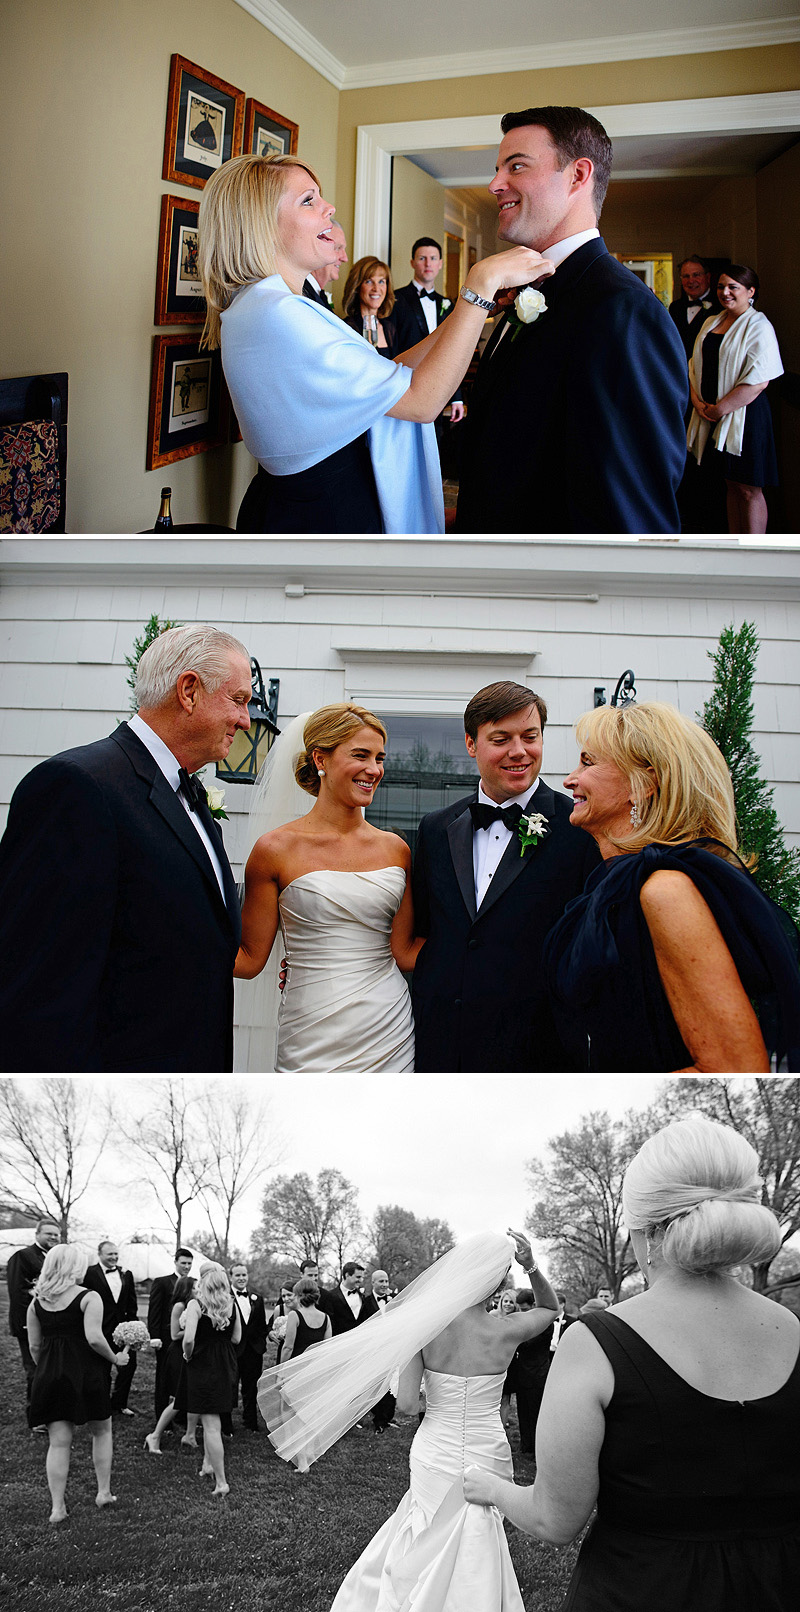 Fun family photos on a wedding day.